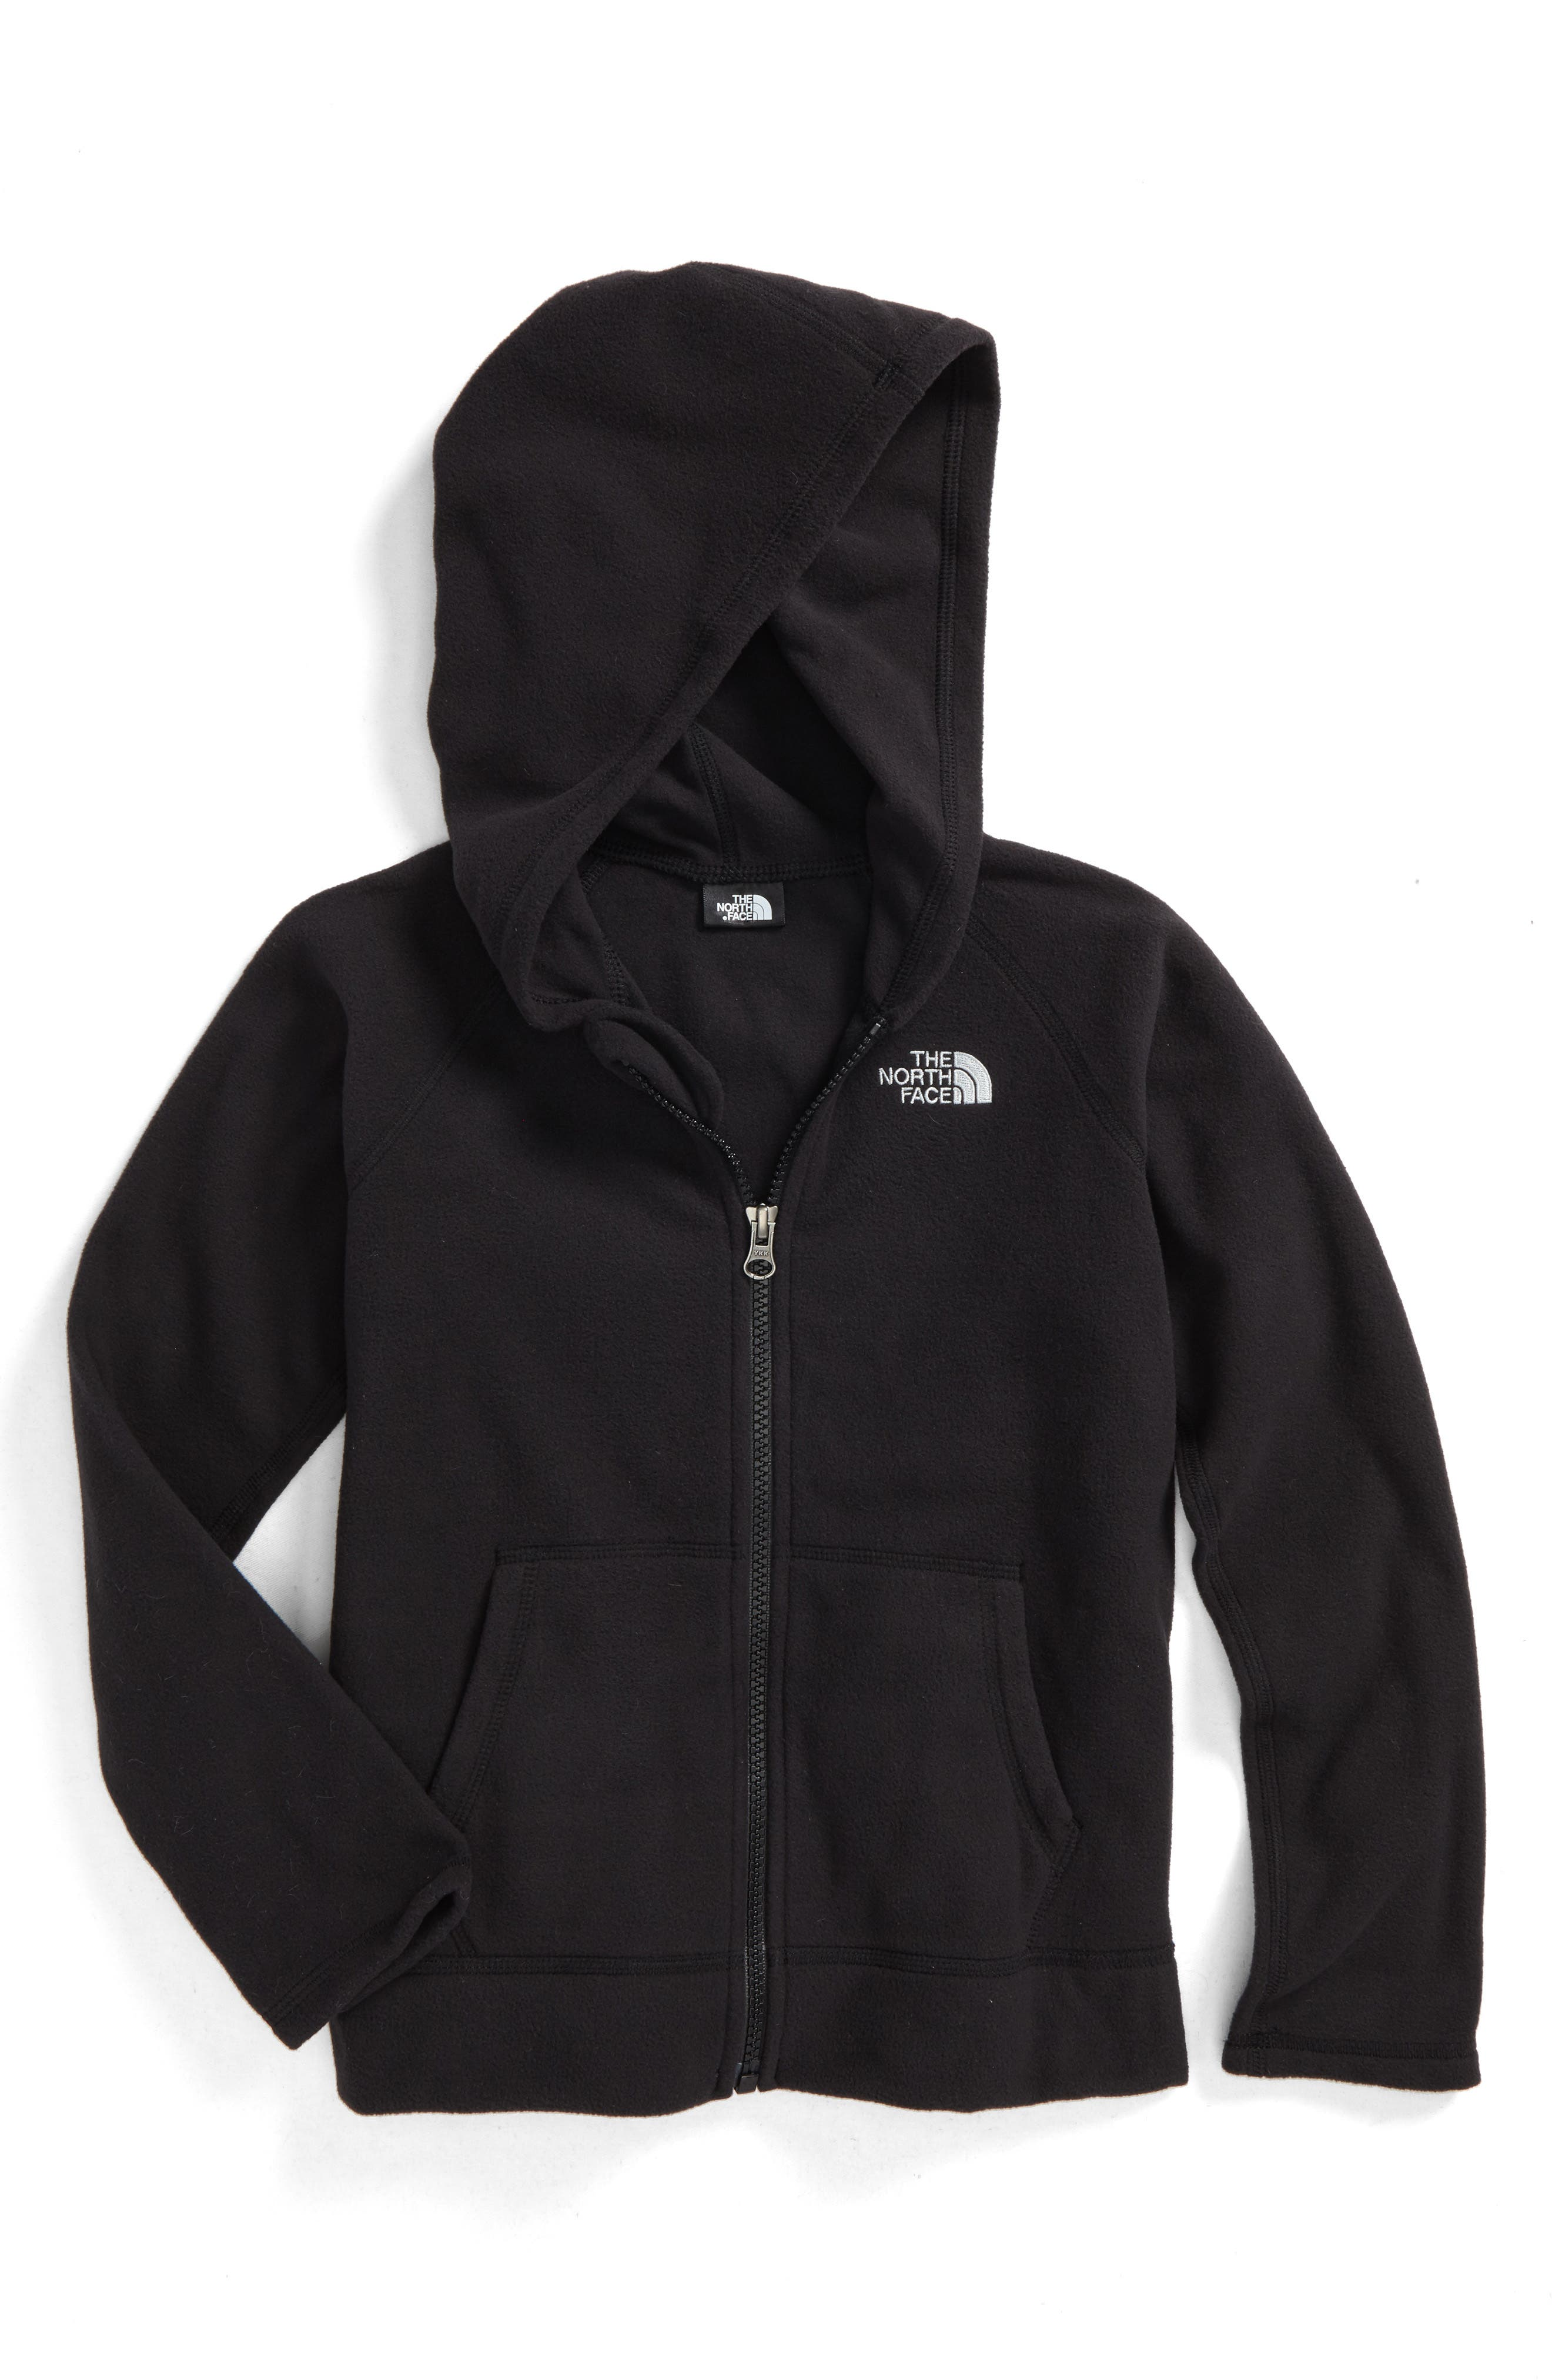 The North Face Glacier Full Zip Hoodie (Toddler Boys & Little Boys)